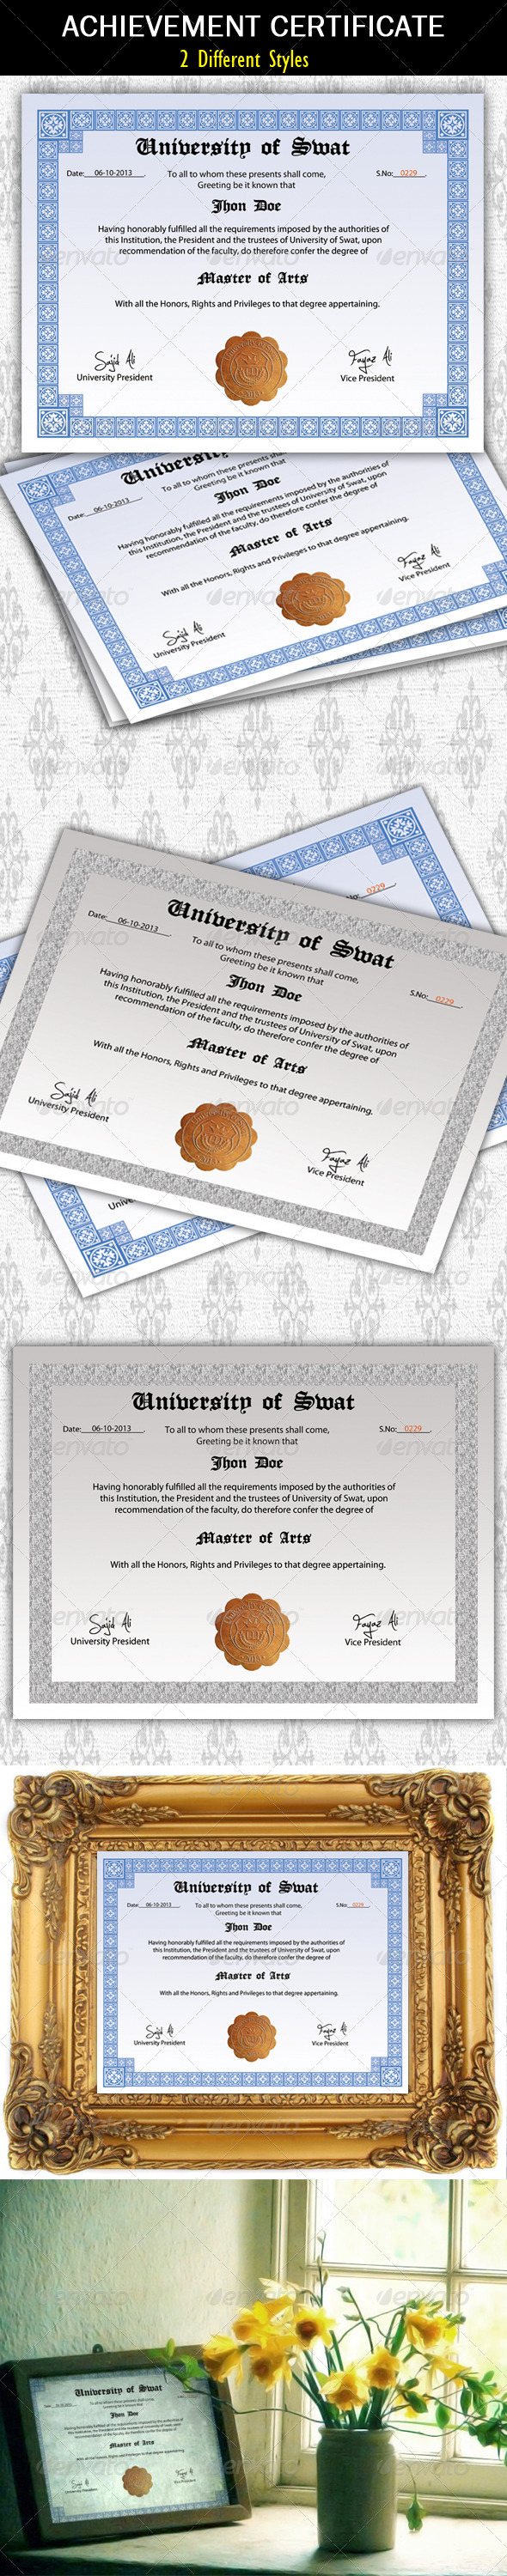 GraphicRiver Achievement Certificate Degree 5802456